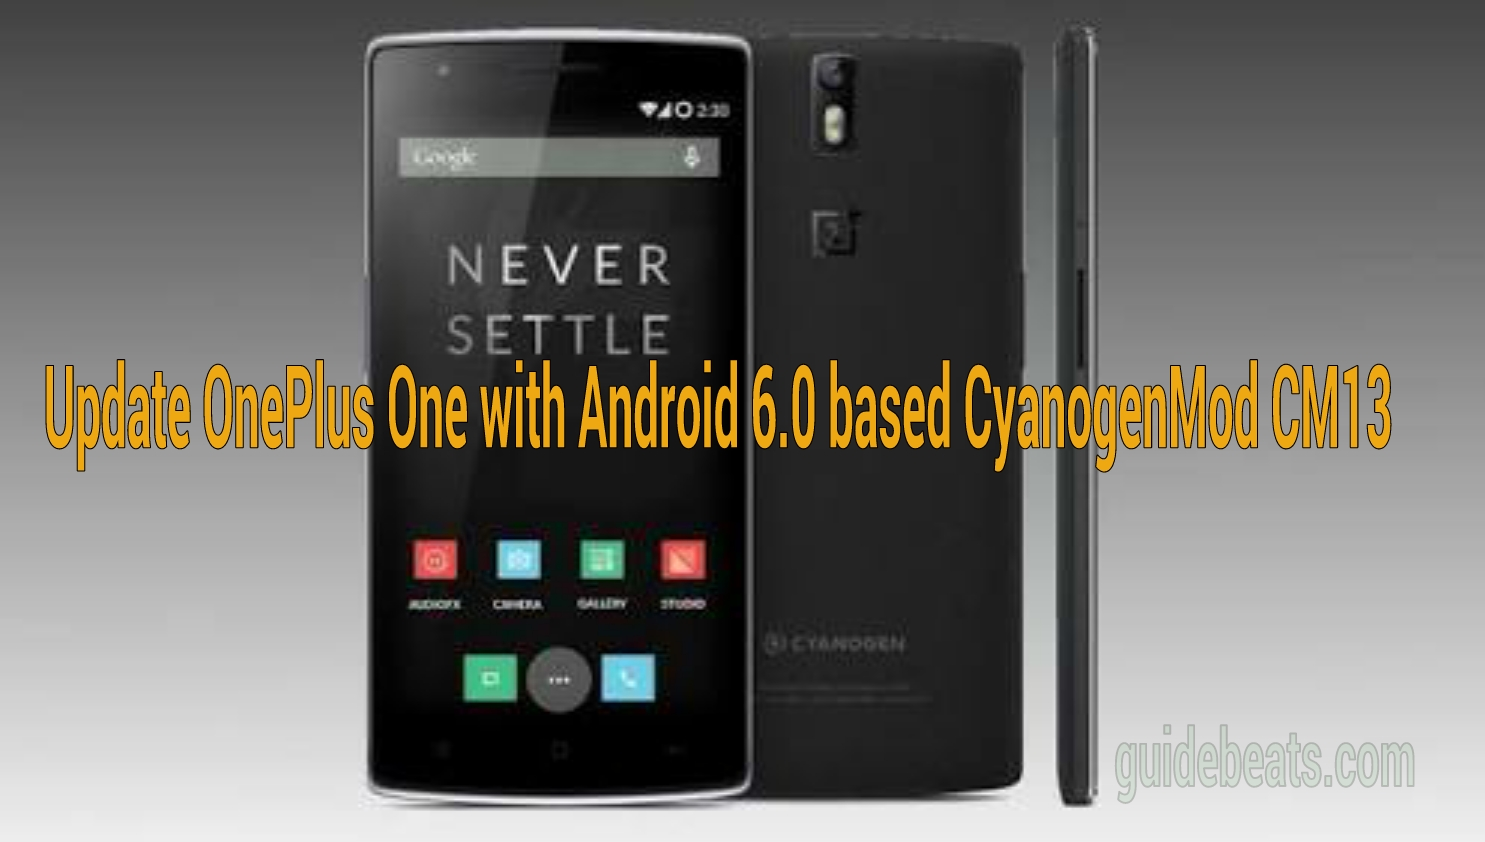 Update OnePlus One with Android 6.0